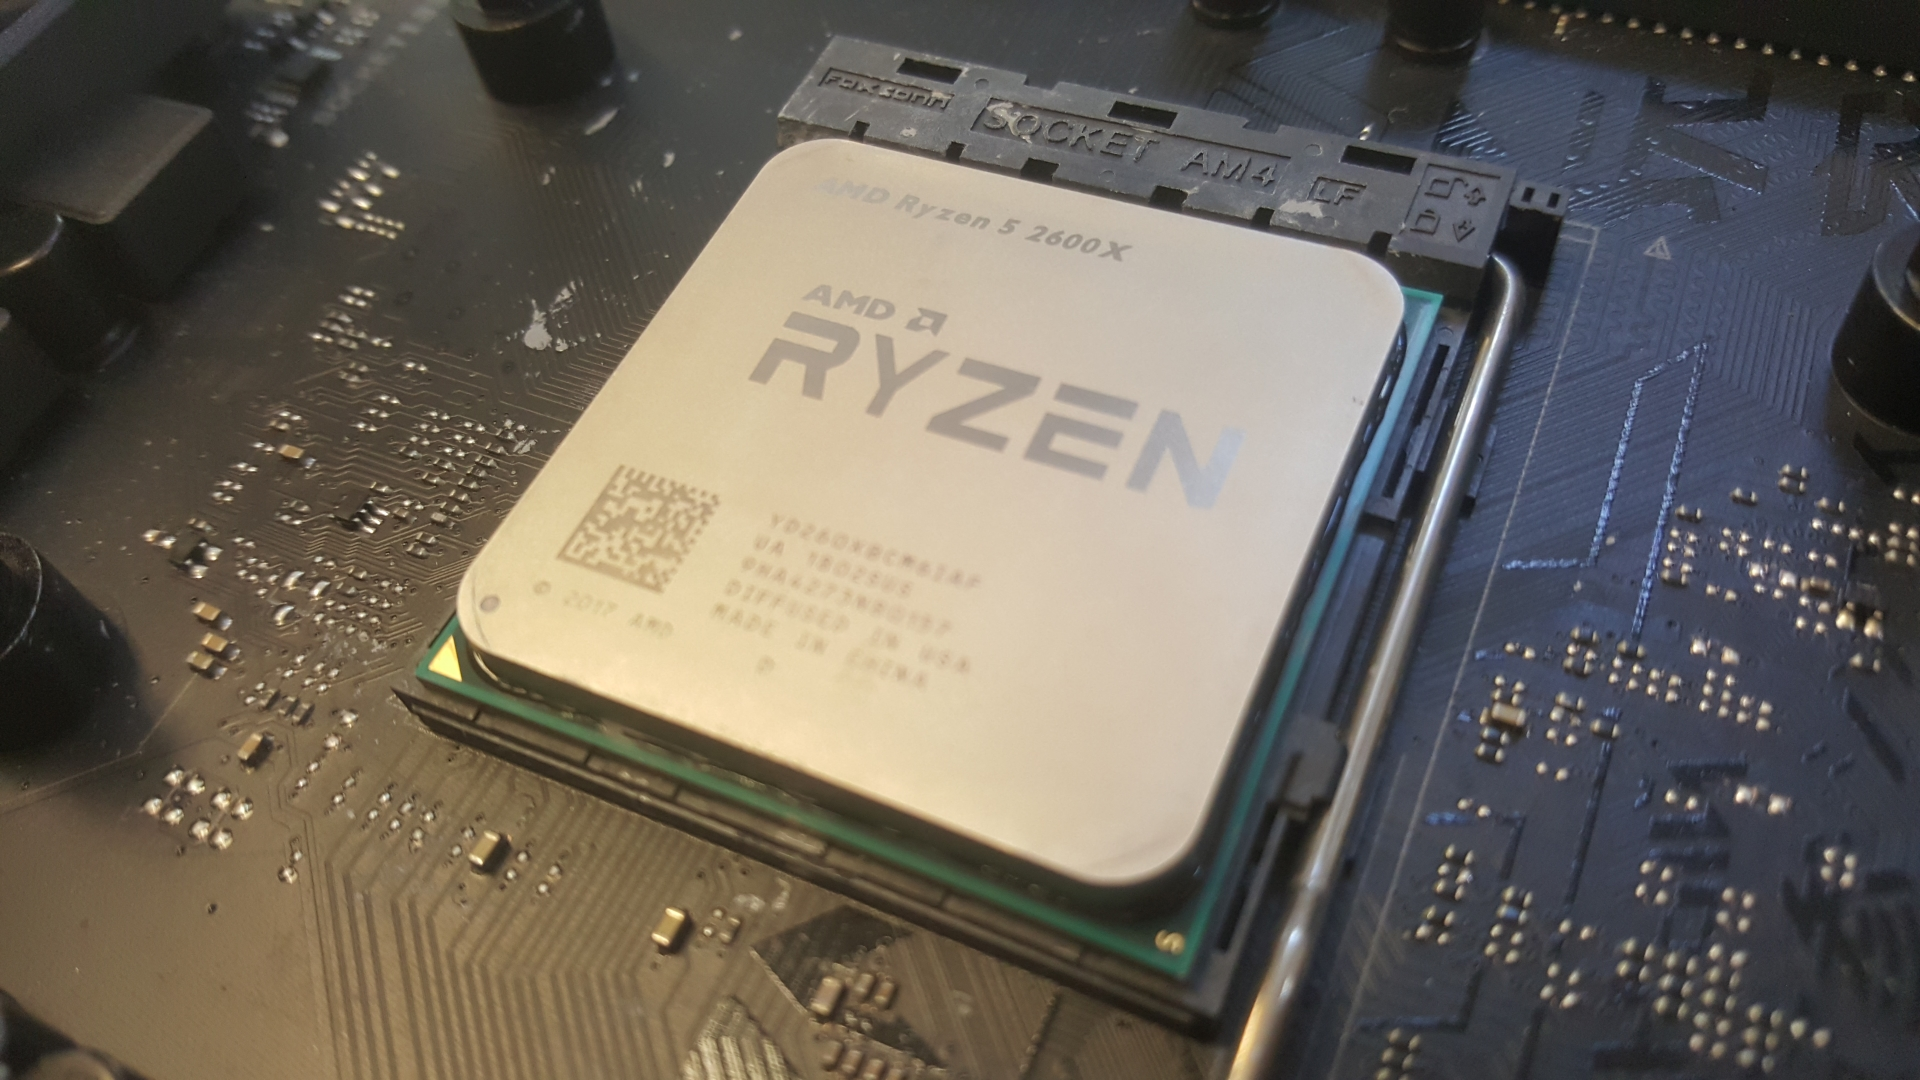 AMD Ryzen 5 2600X review: a CPU that deserves to be the heart of your next gaming rig   PCGamesN